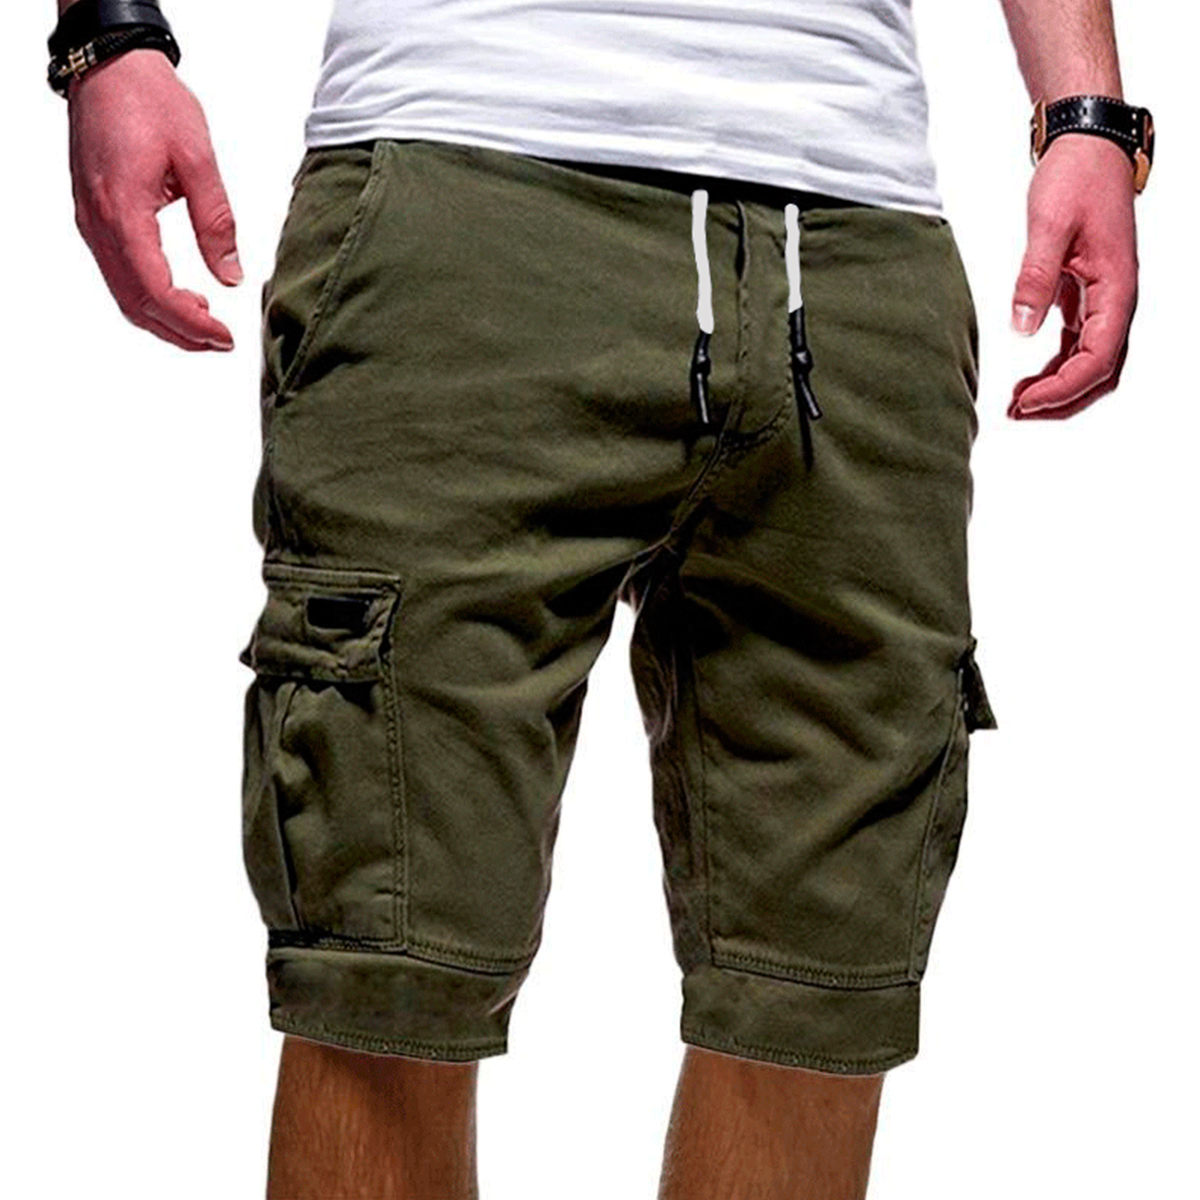 Laamei Hot-Selling Fitness Casual Workout Short Pants Men's Multi-pocket Sports